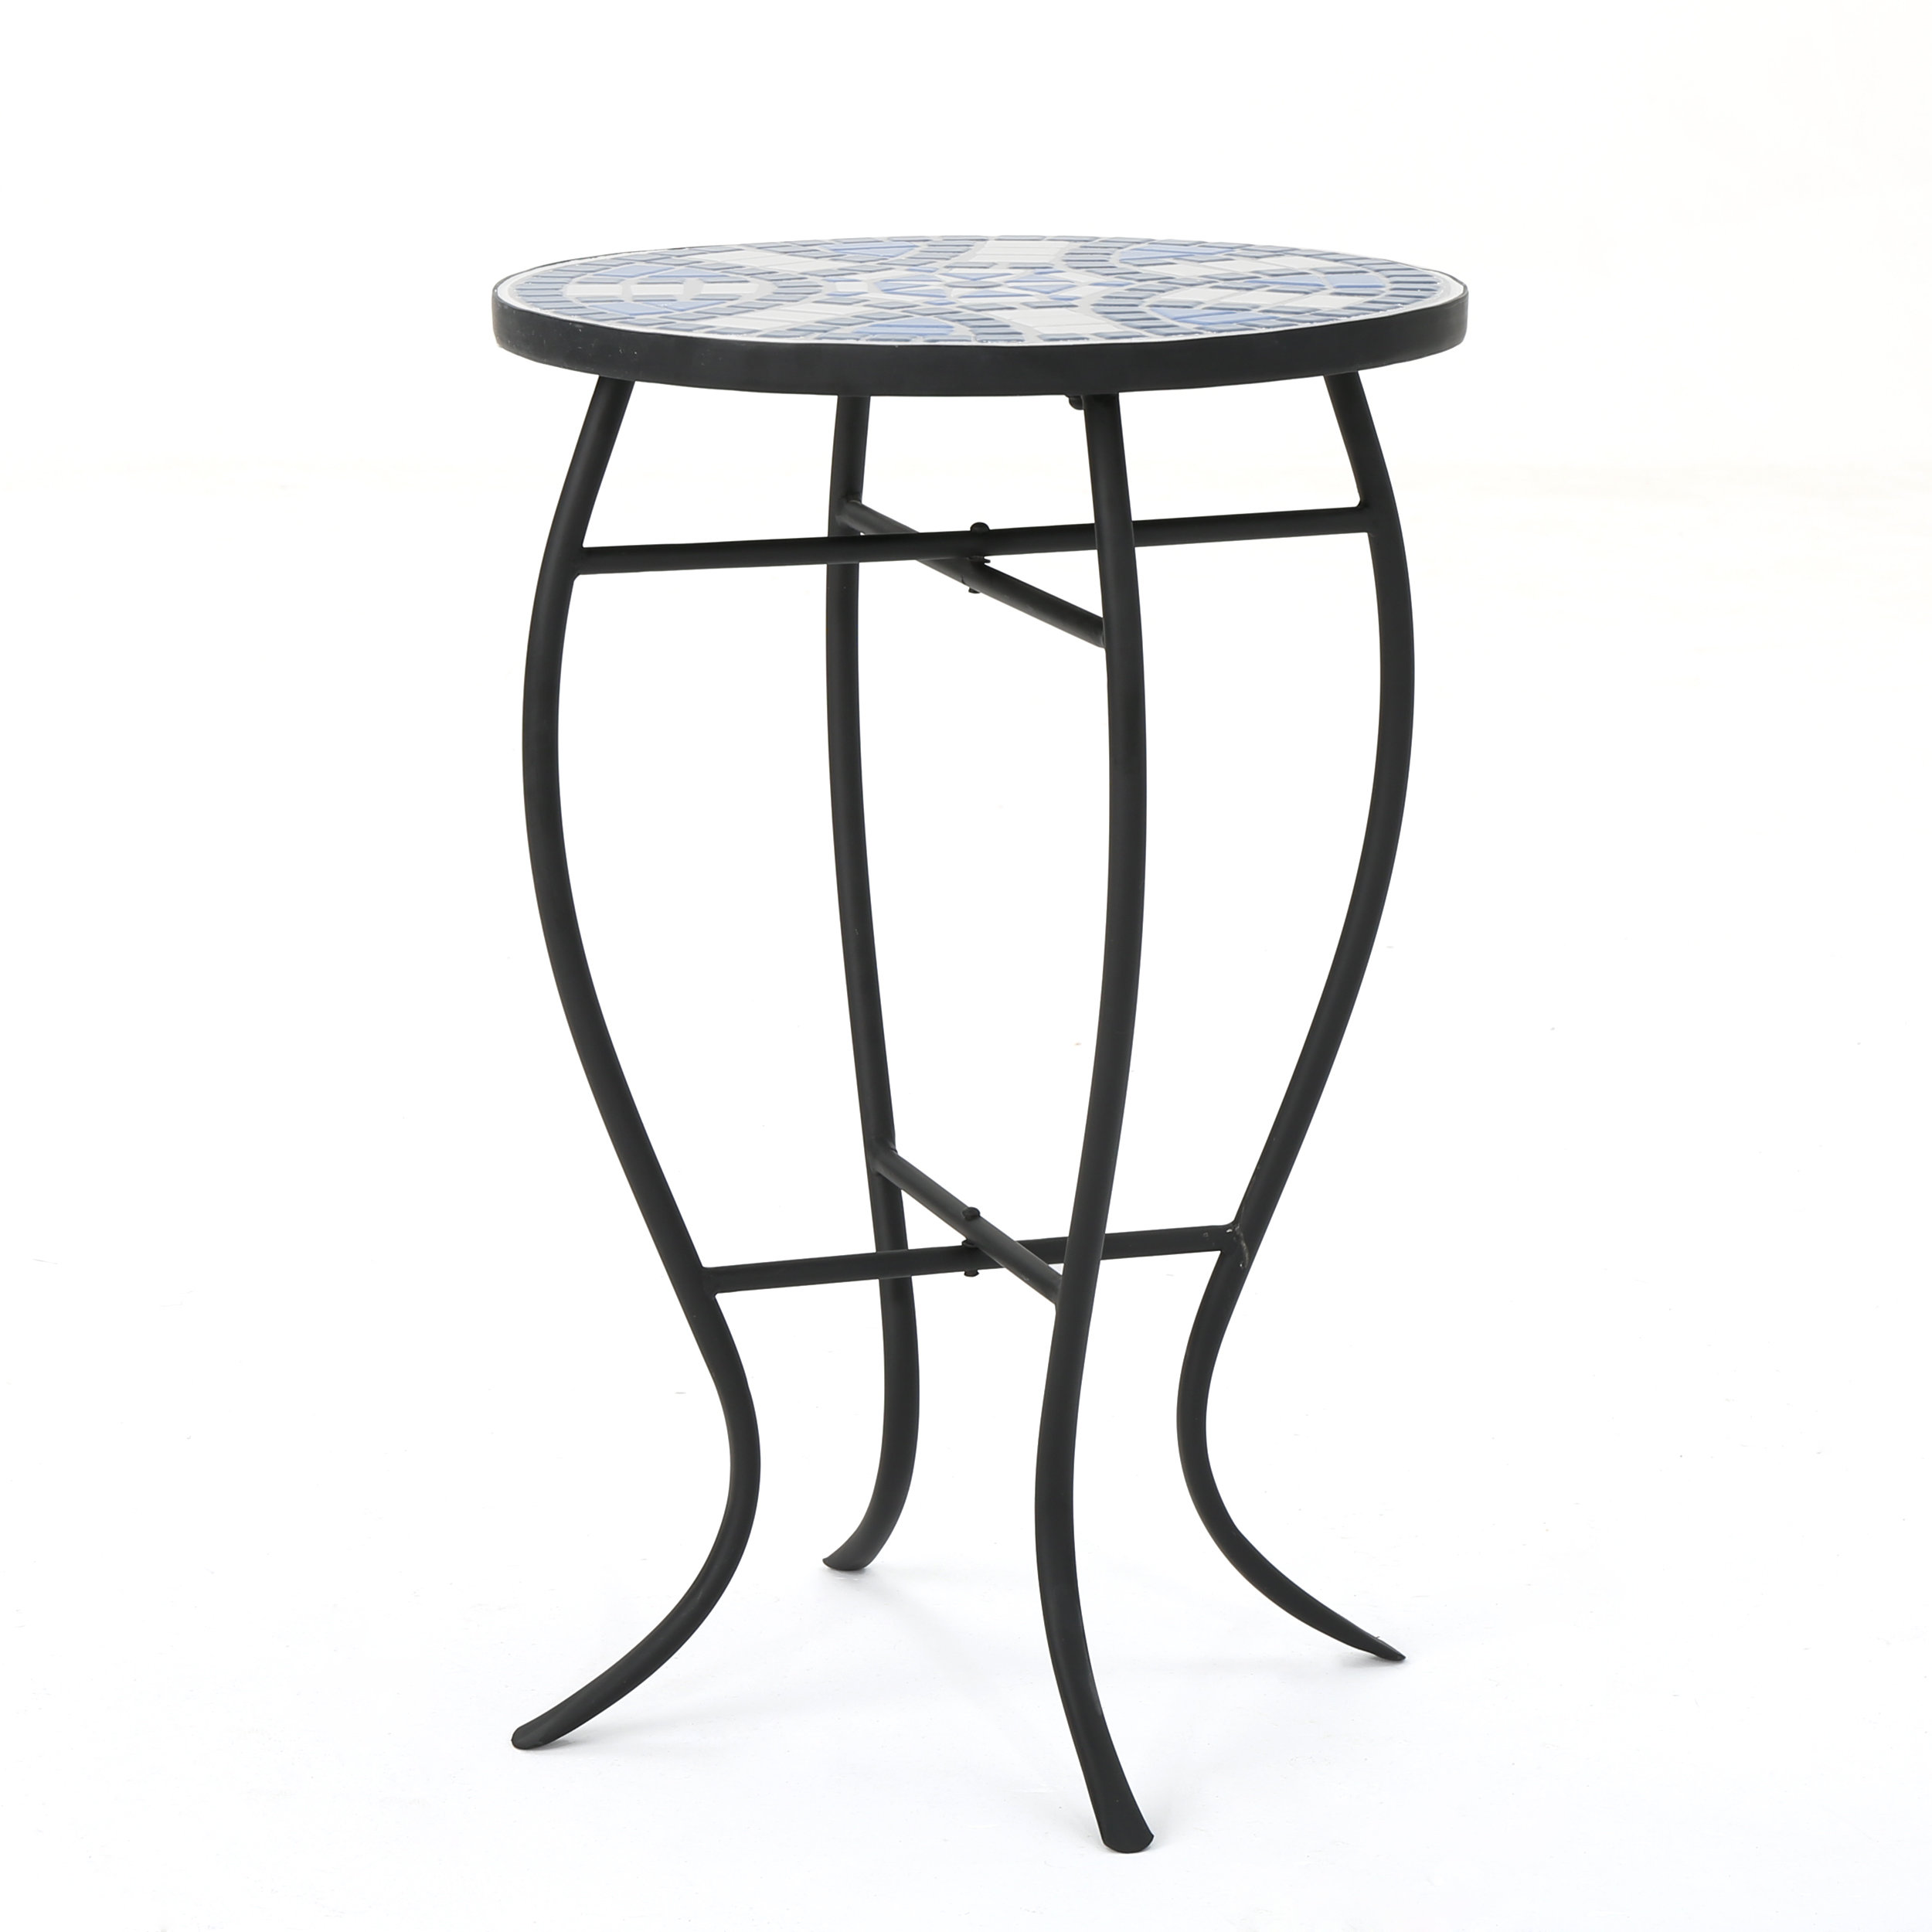 leeds outdoor side table reviews joss main accent black height gold coffee modern concrete glass with metal legs woodworking plans lamp shades for floor lamps sectional stone